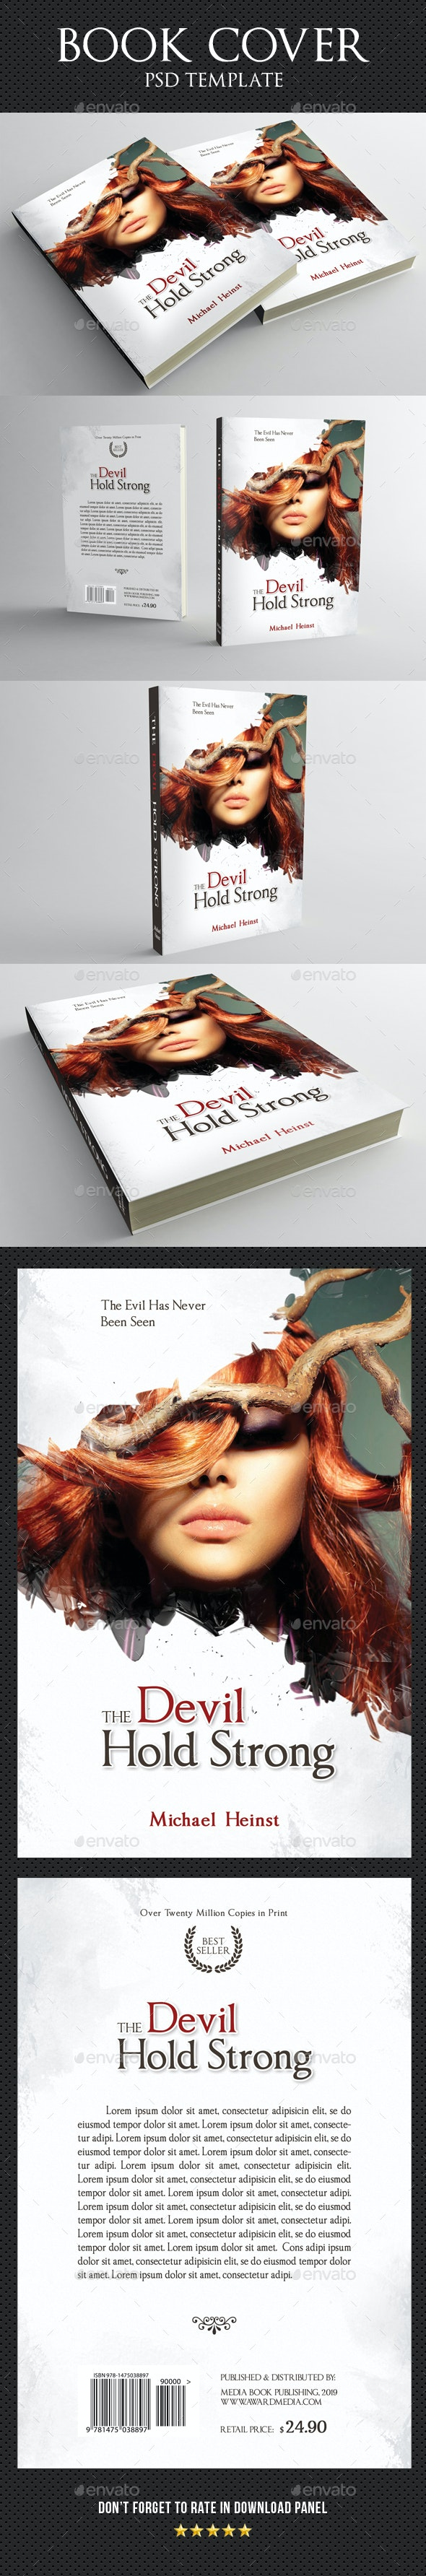 Book Cover Template 62 - Miscellaneous Print Templates